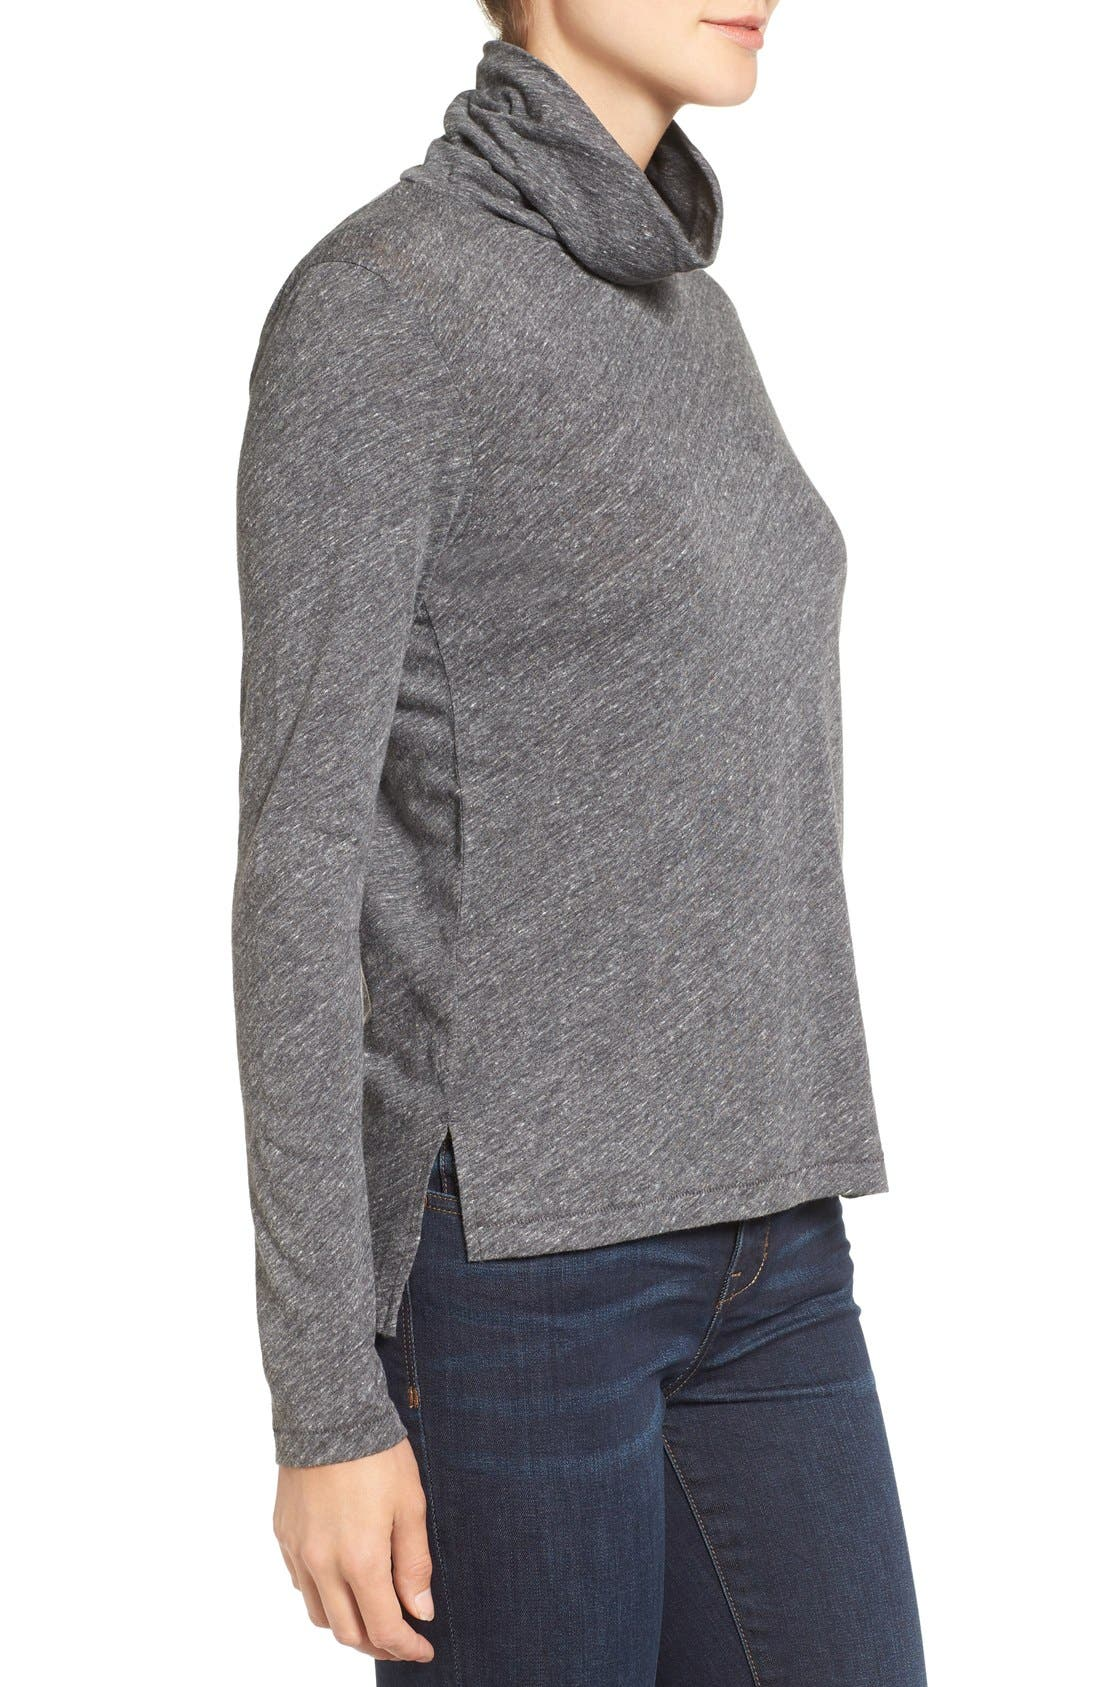 Alternate Image 3  - Madewell Whisper Cotton Turtleneck Top